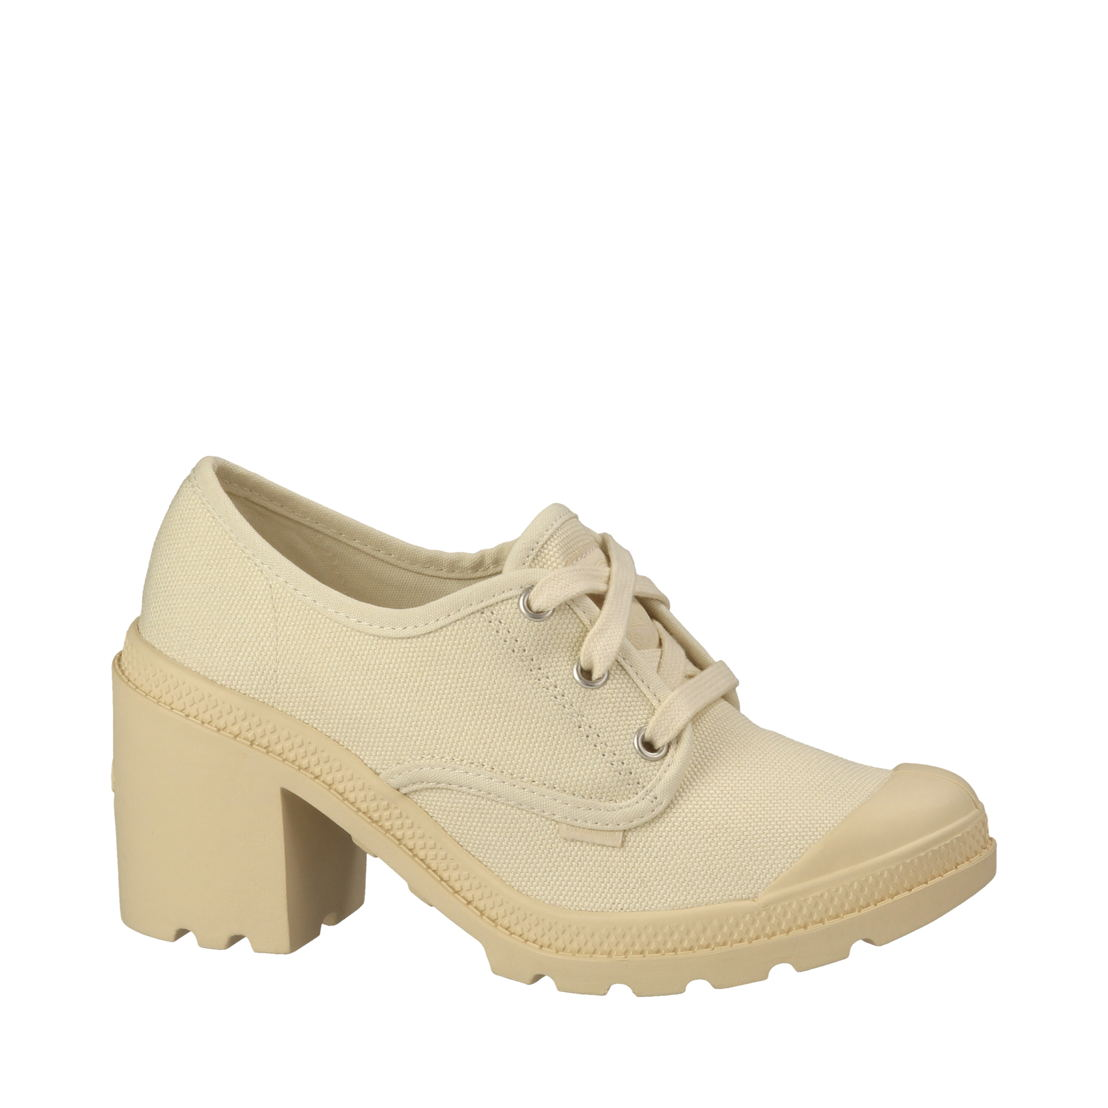 Palladium_Women Pampa Oxford Heel - 69,95 euro